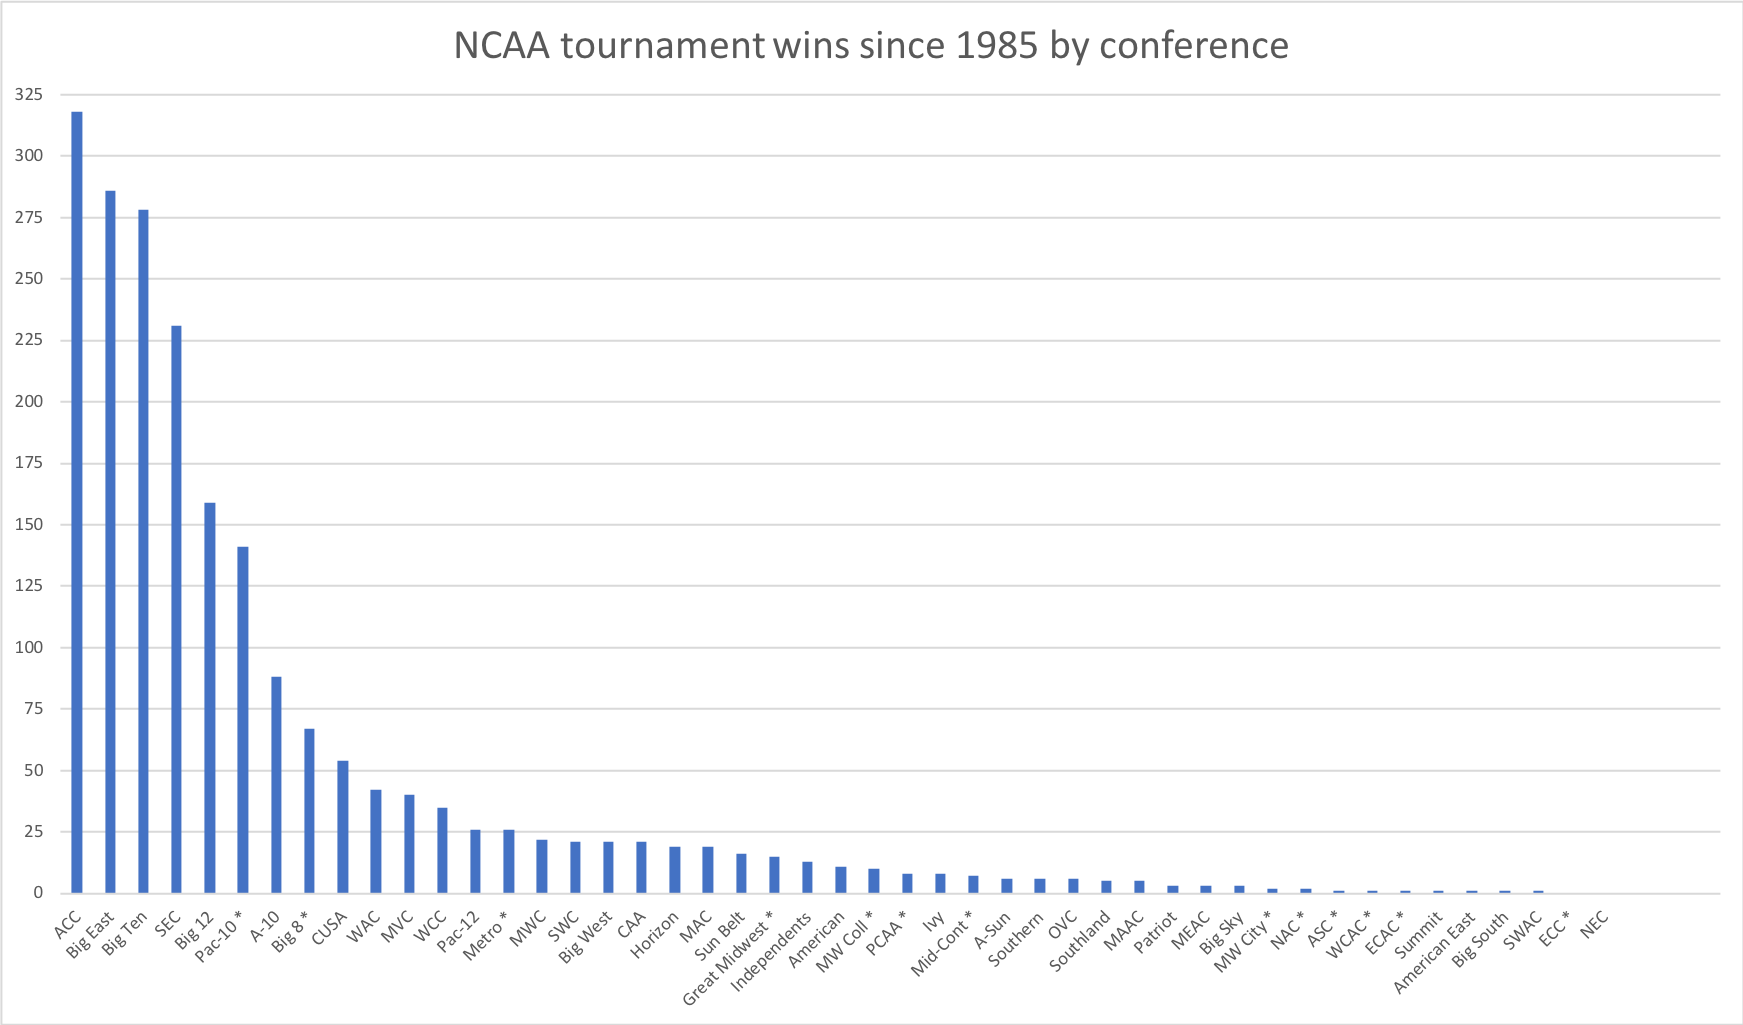 NCAA tournament wins by conference